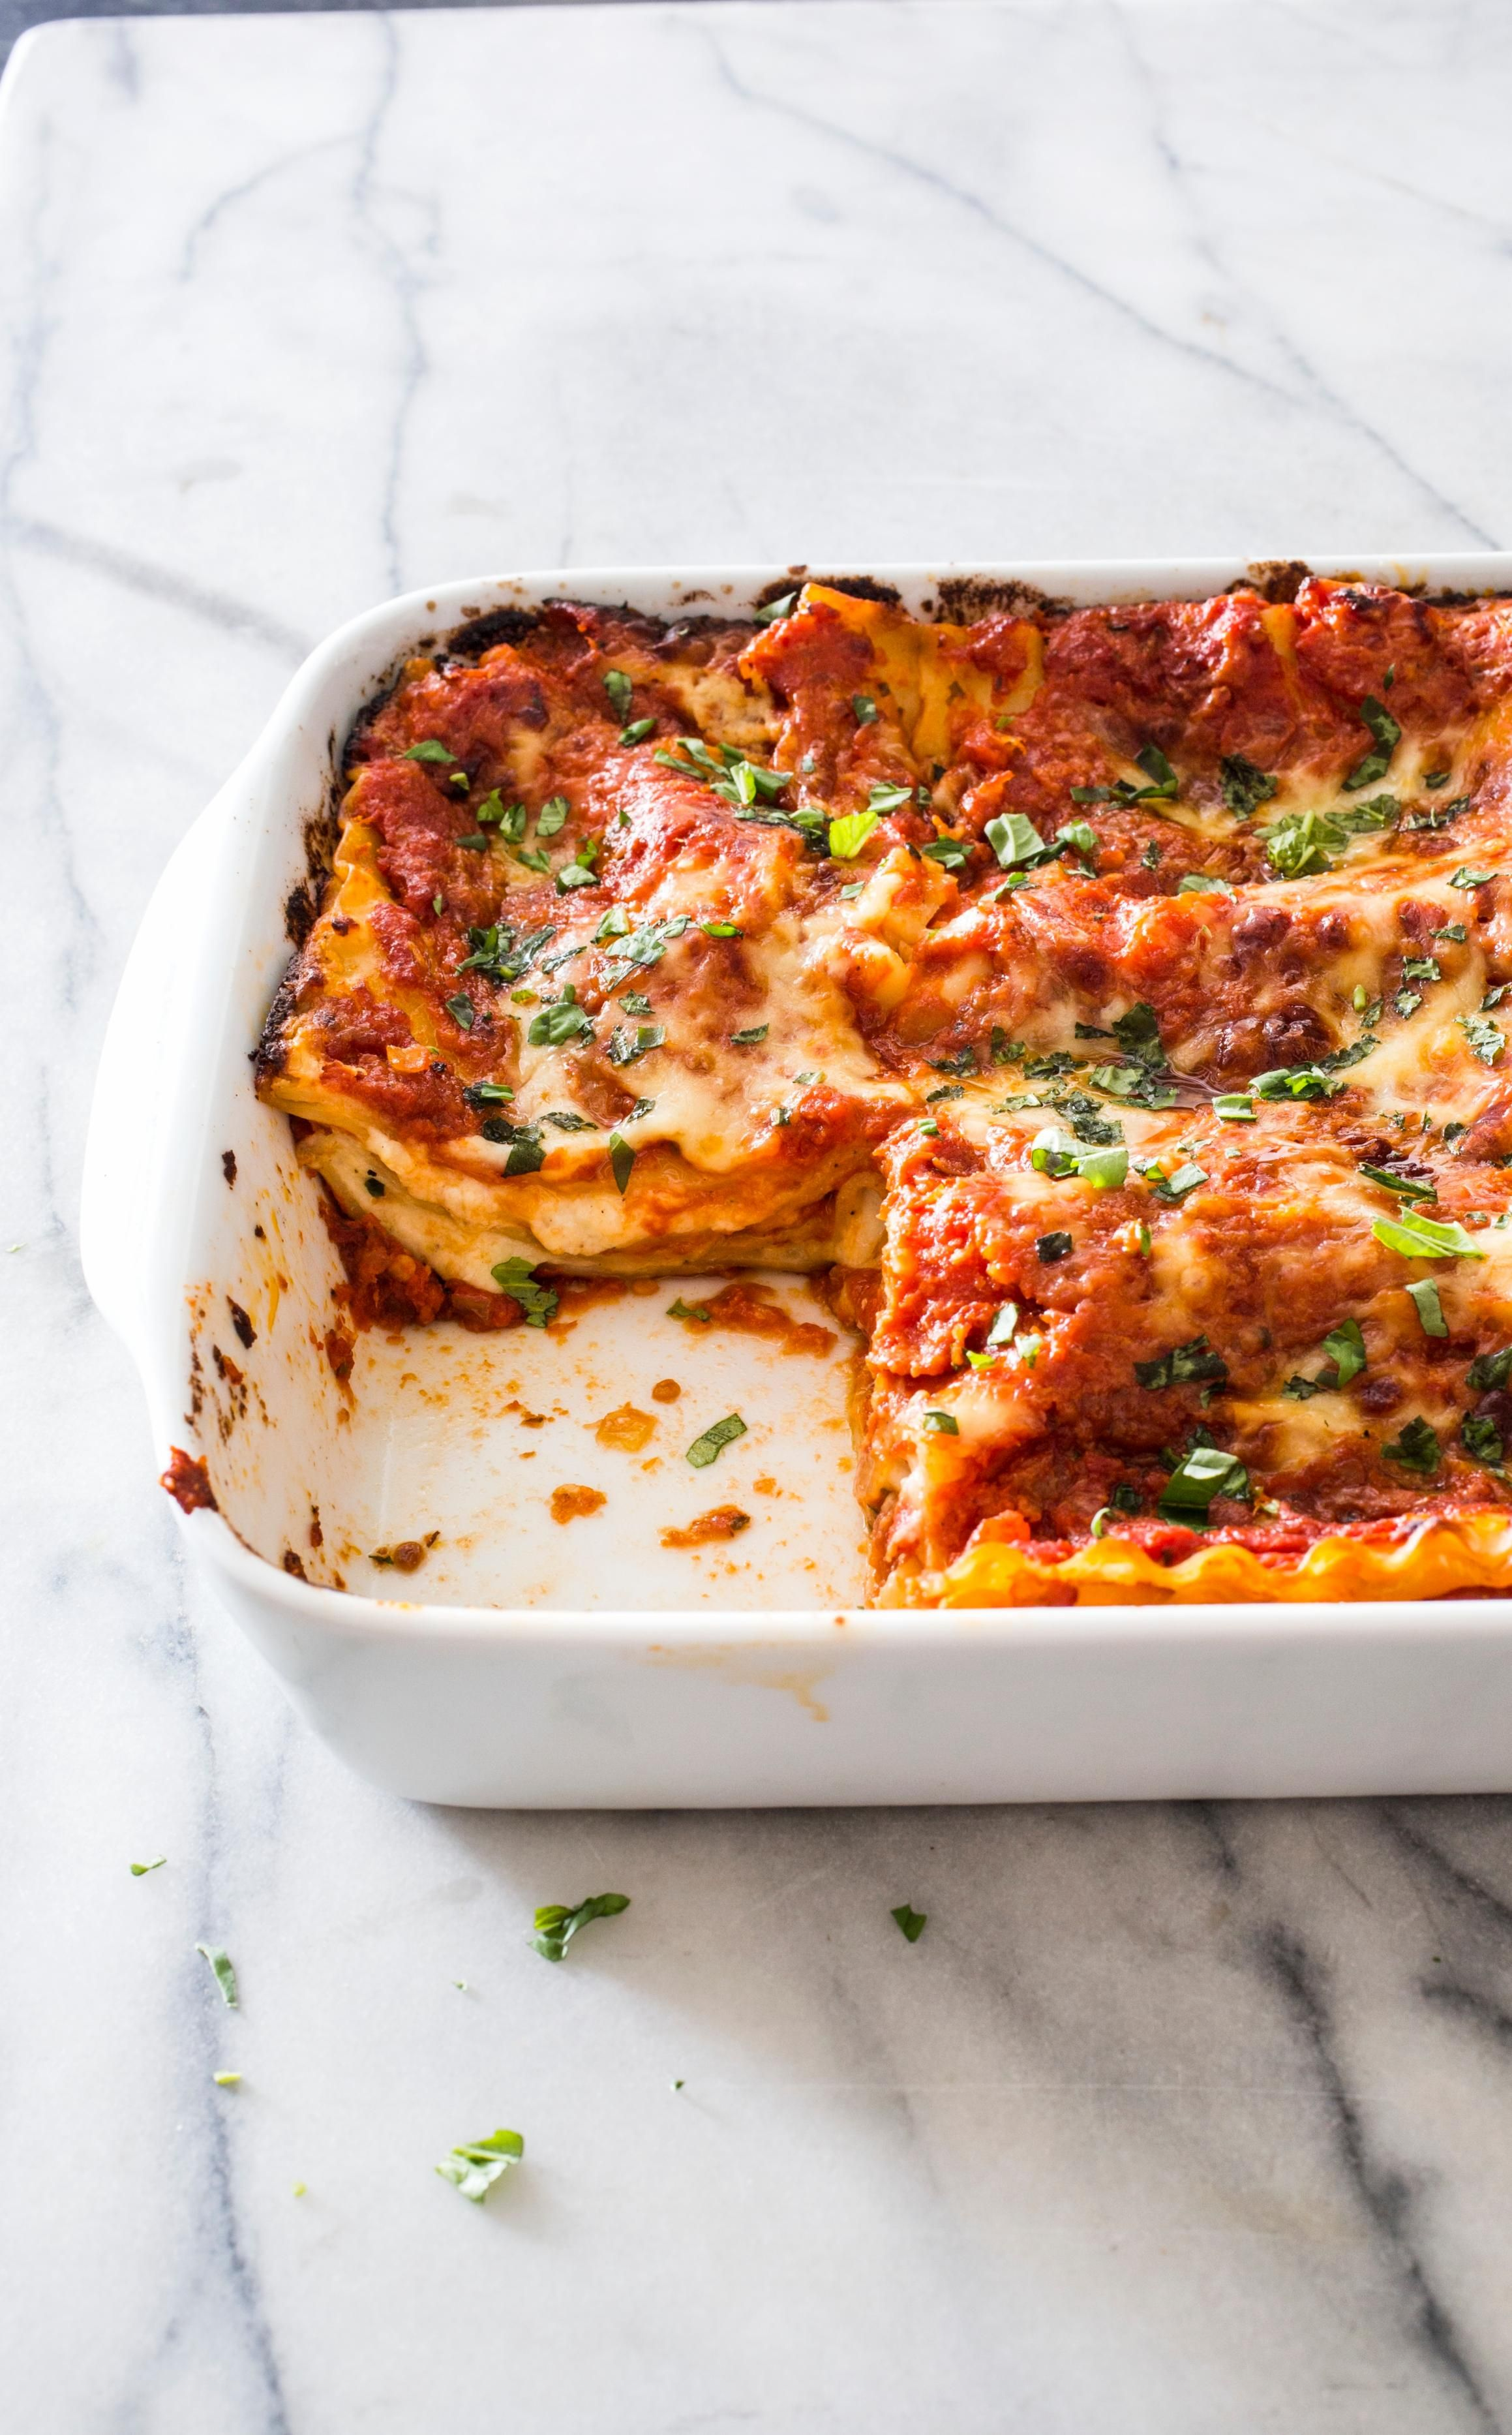 Cheese And Tomato Lasagna The Key To A Cheesy But Not Soggy